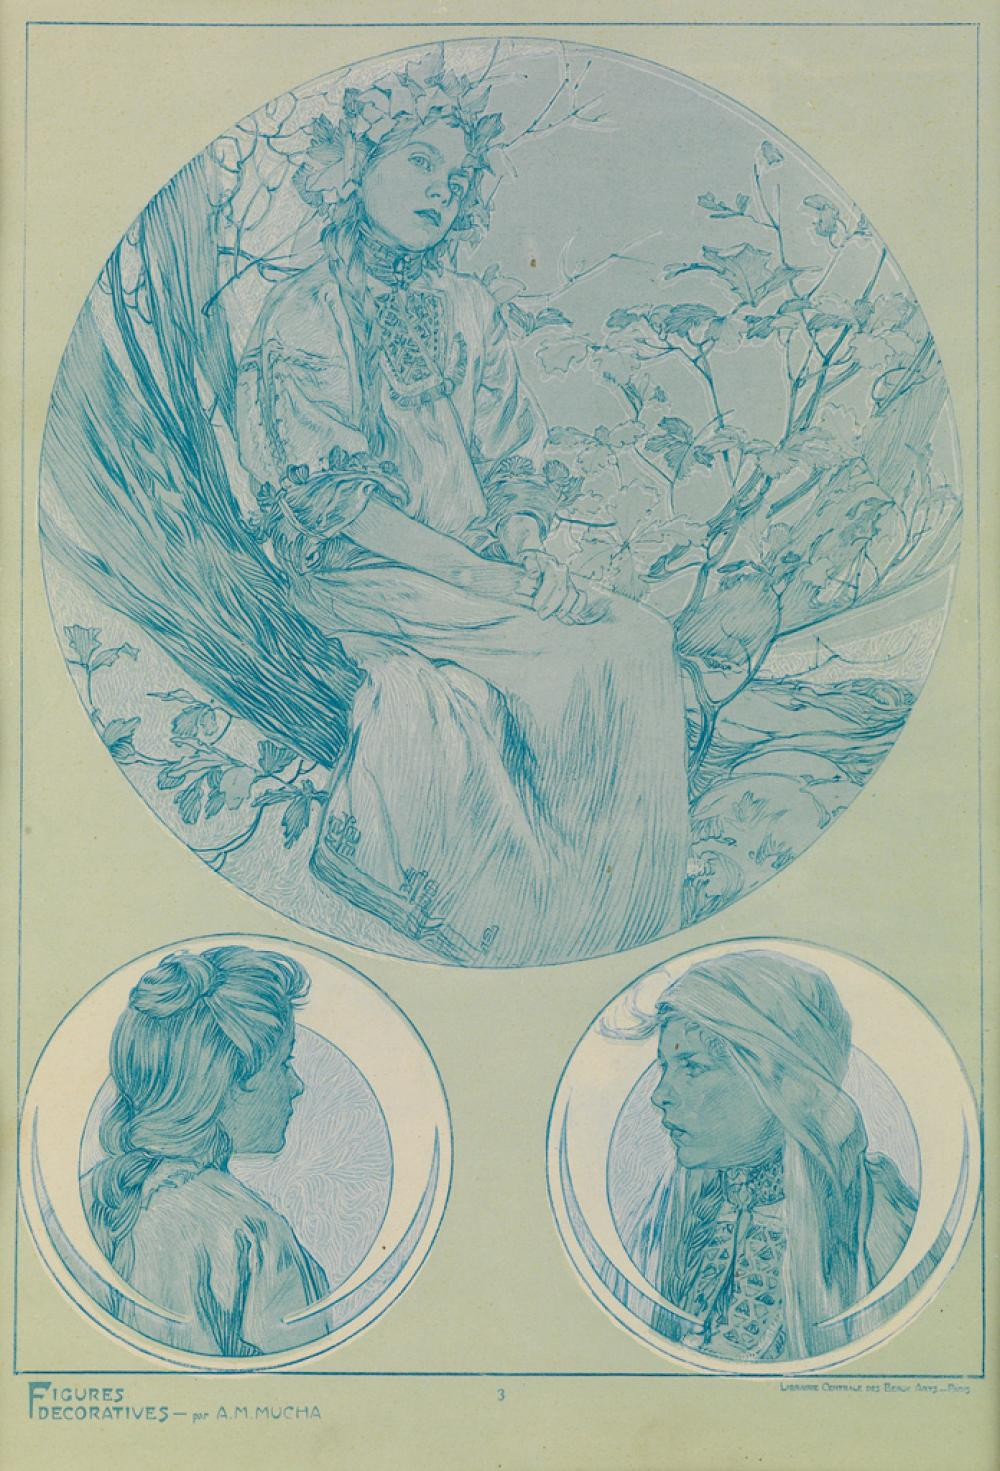 ALPHONSE MUCHA (1860-1939). [FIGURES DÉCORATIFS.] Group of 4 plates. 1905. Each approximately 15x11 inches, 40x28 cm. [Emile Levy, Pari